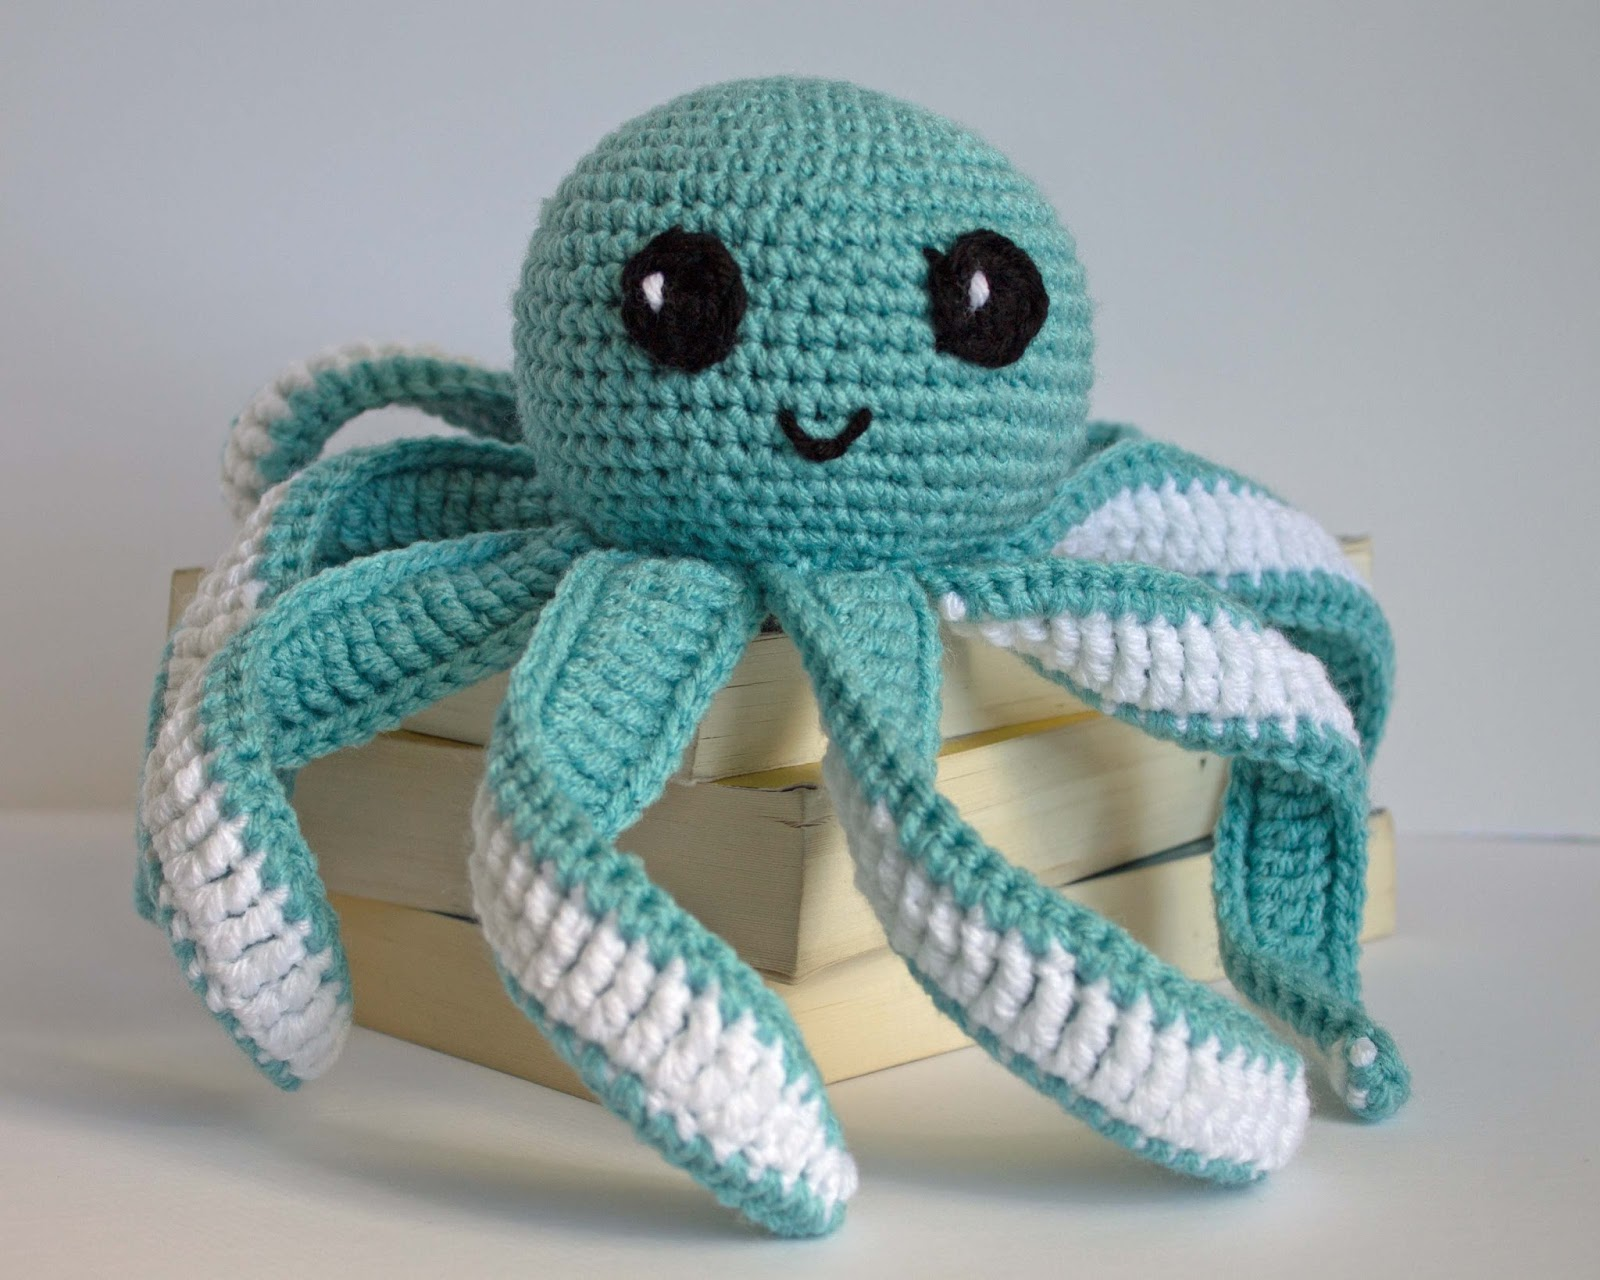 Free Crochet Toy Patterns For Babies New Inspiration Design